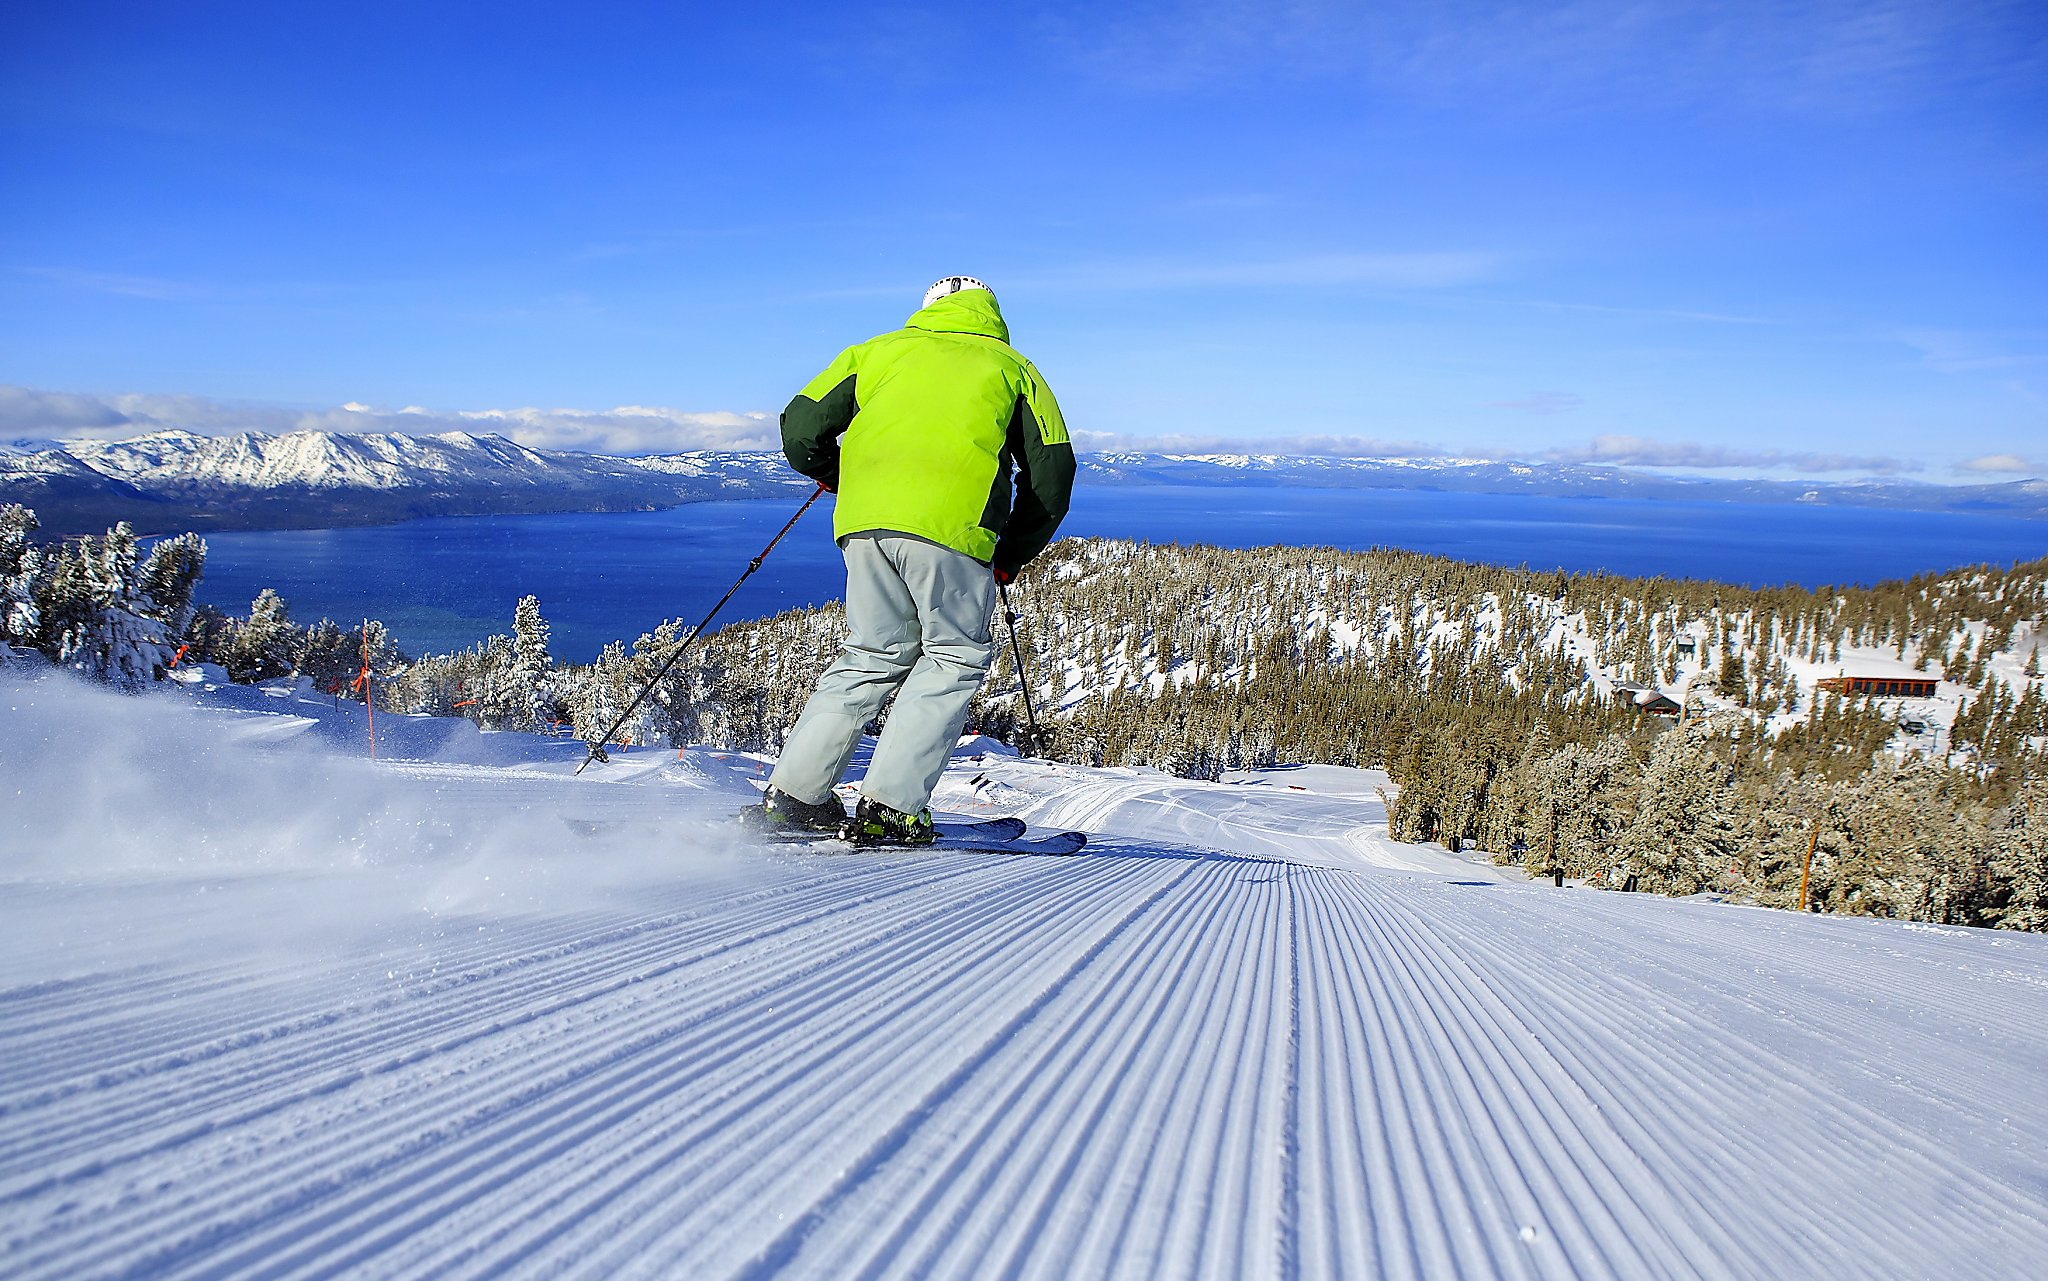 Tahoe snow report: Runs open, but fresh snow scant